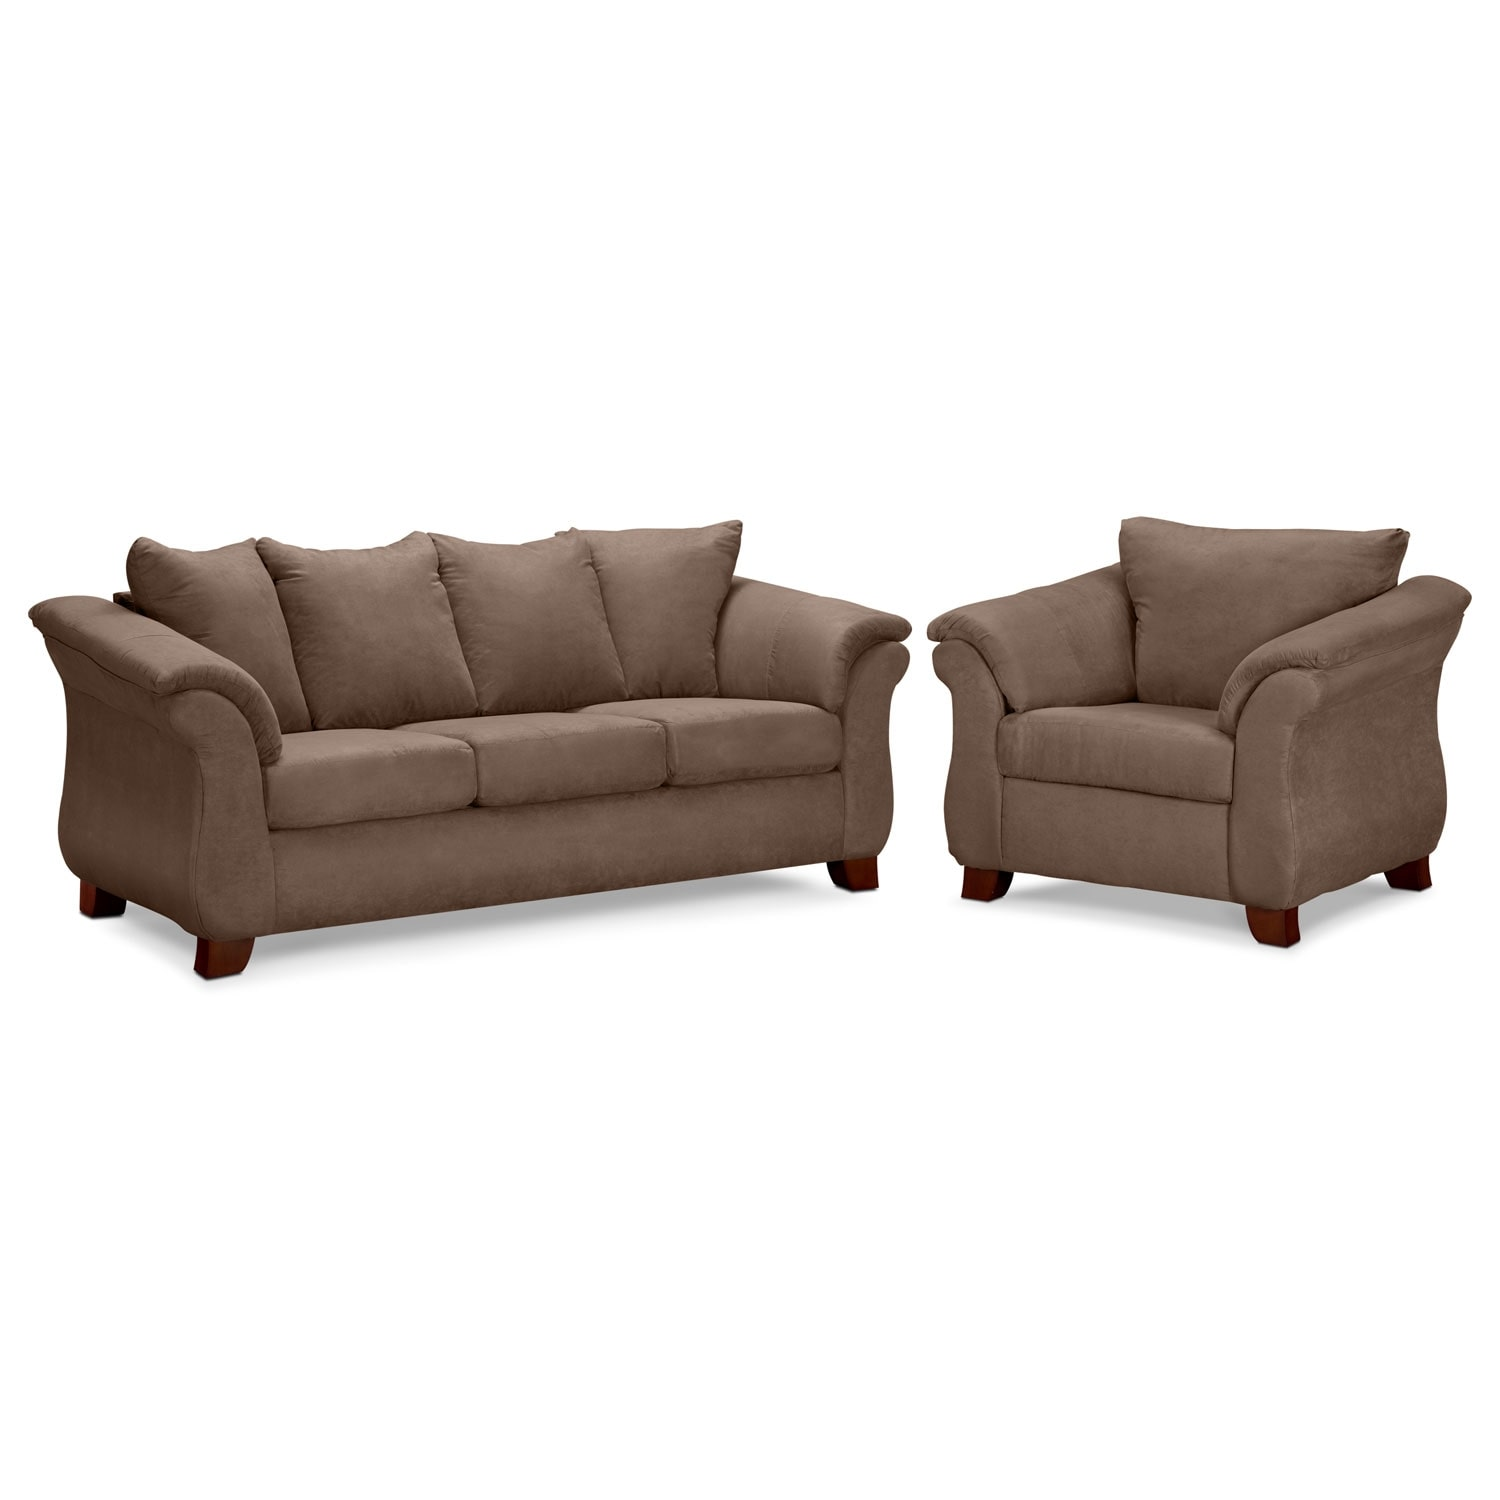 Adrian Sofa and Chair Set - Taupe